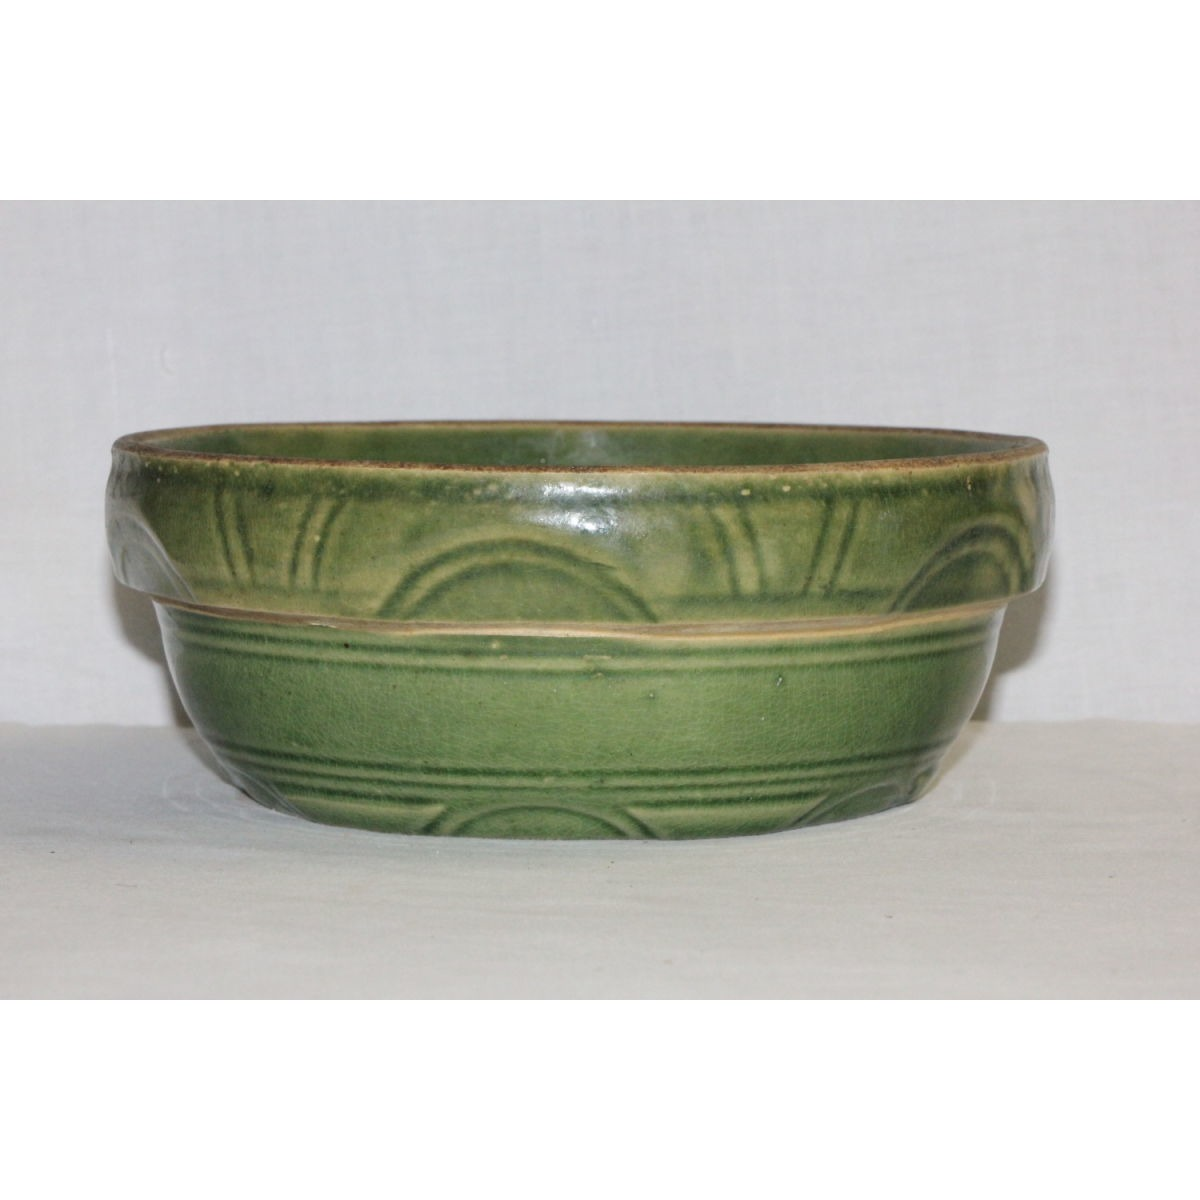 Green Glazed Arcs and Lines Yellowware Milk Bowl